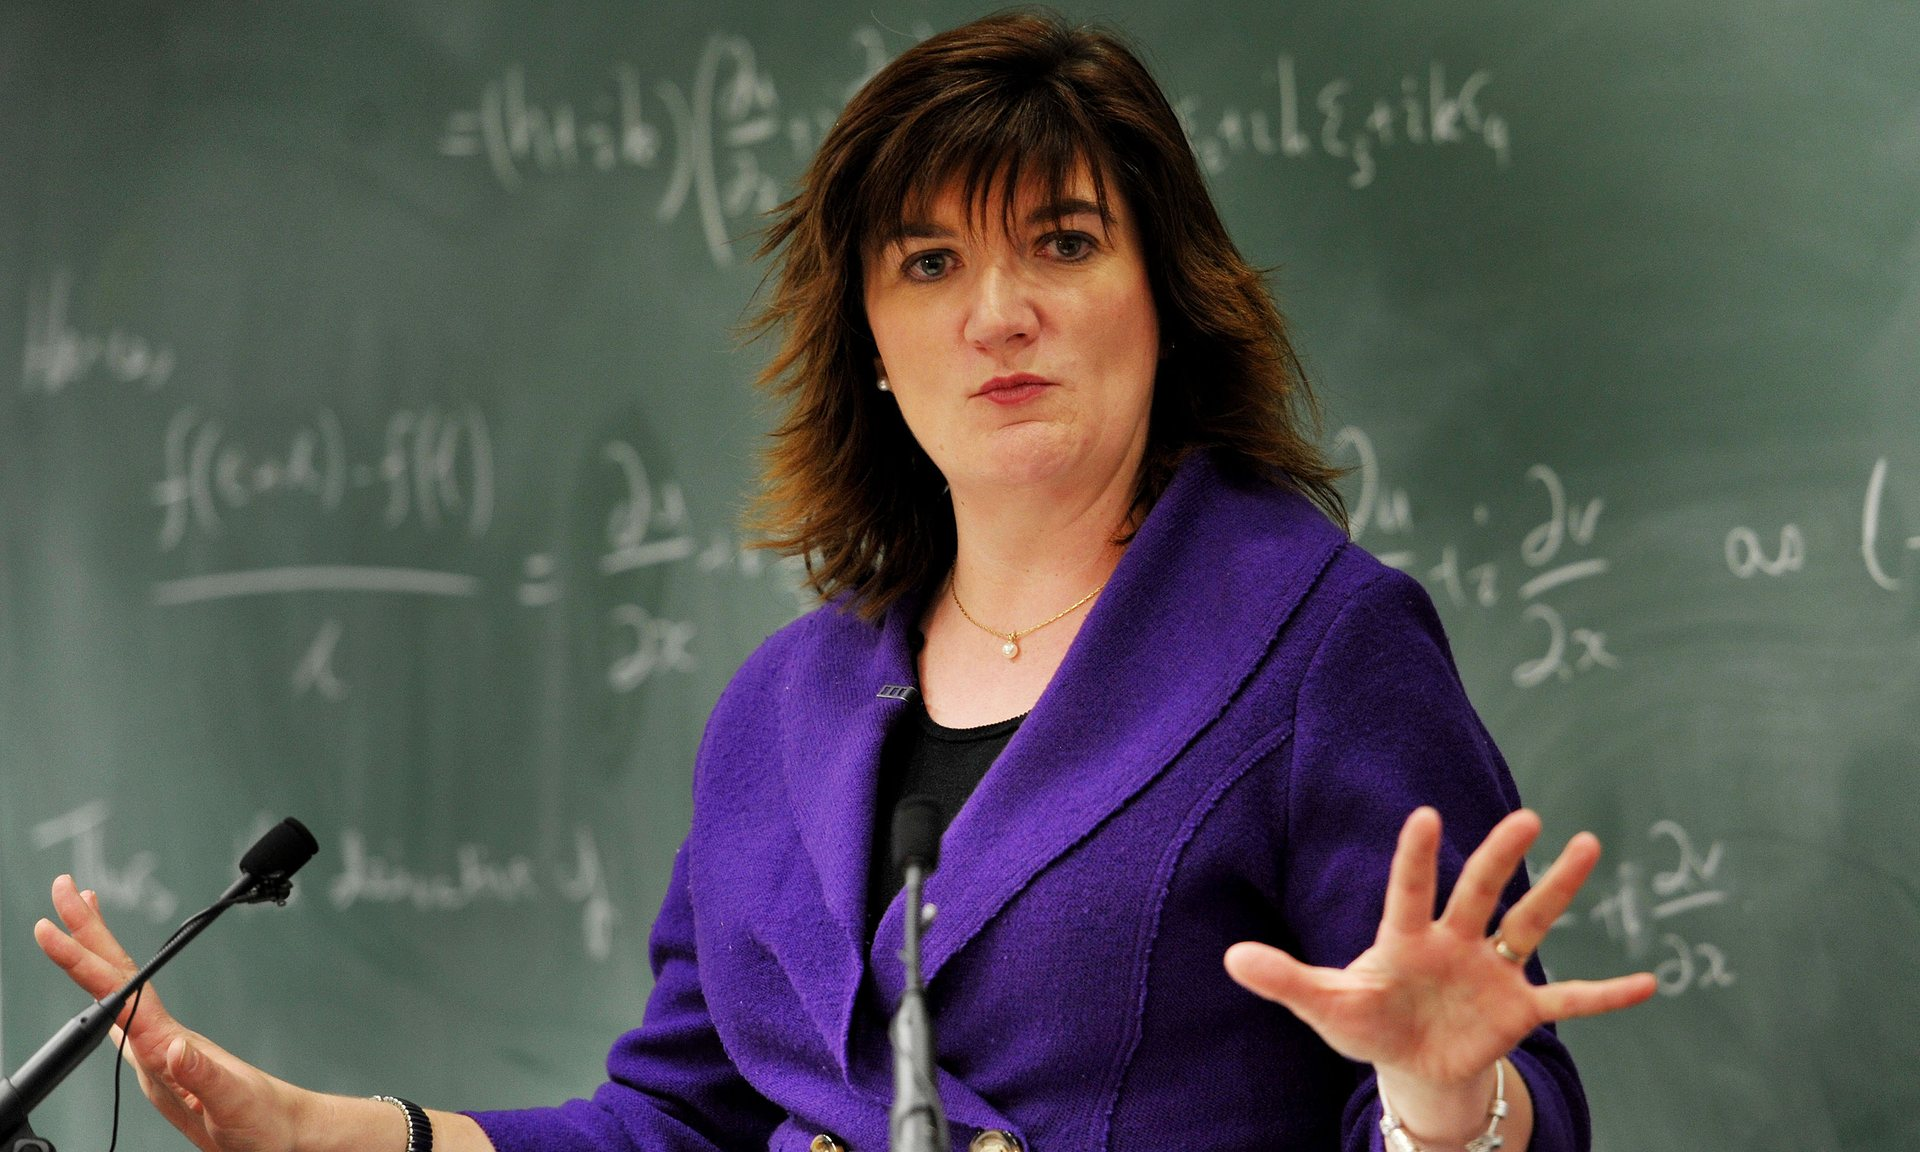 Nicky Morgan, equalities minister, announced in February that companies employing more than 250 people would have to disclose pay gaps by 2018. Photograph: Nick Ansell/PA